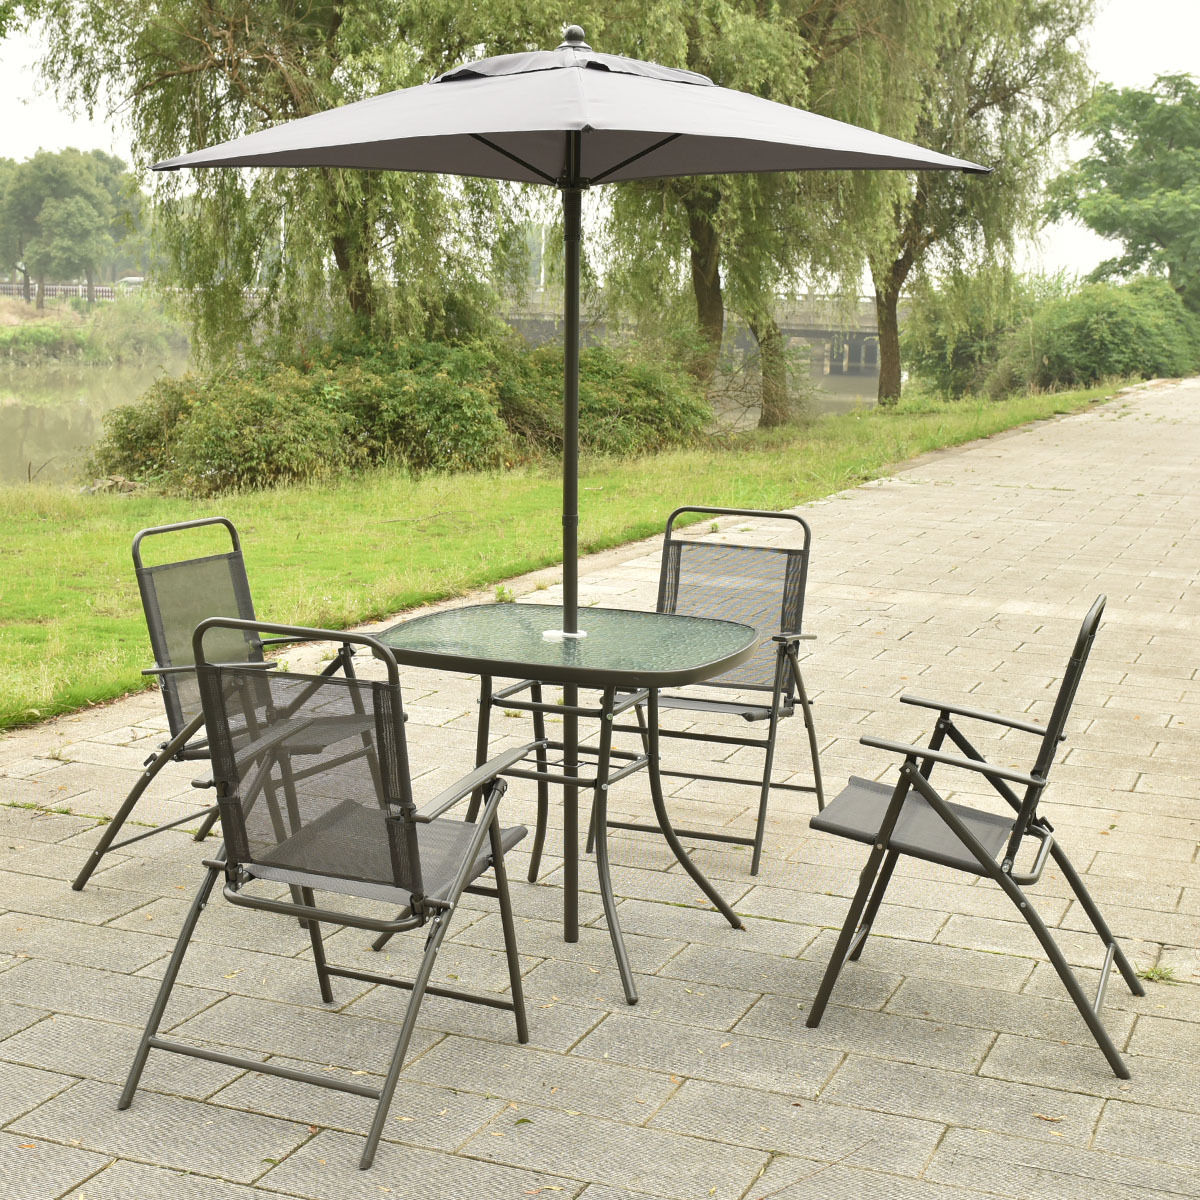 patio folding chair cover rentals windsor ontario 6 pcs furniture set with an umbrella outdoor sets